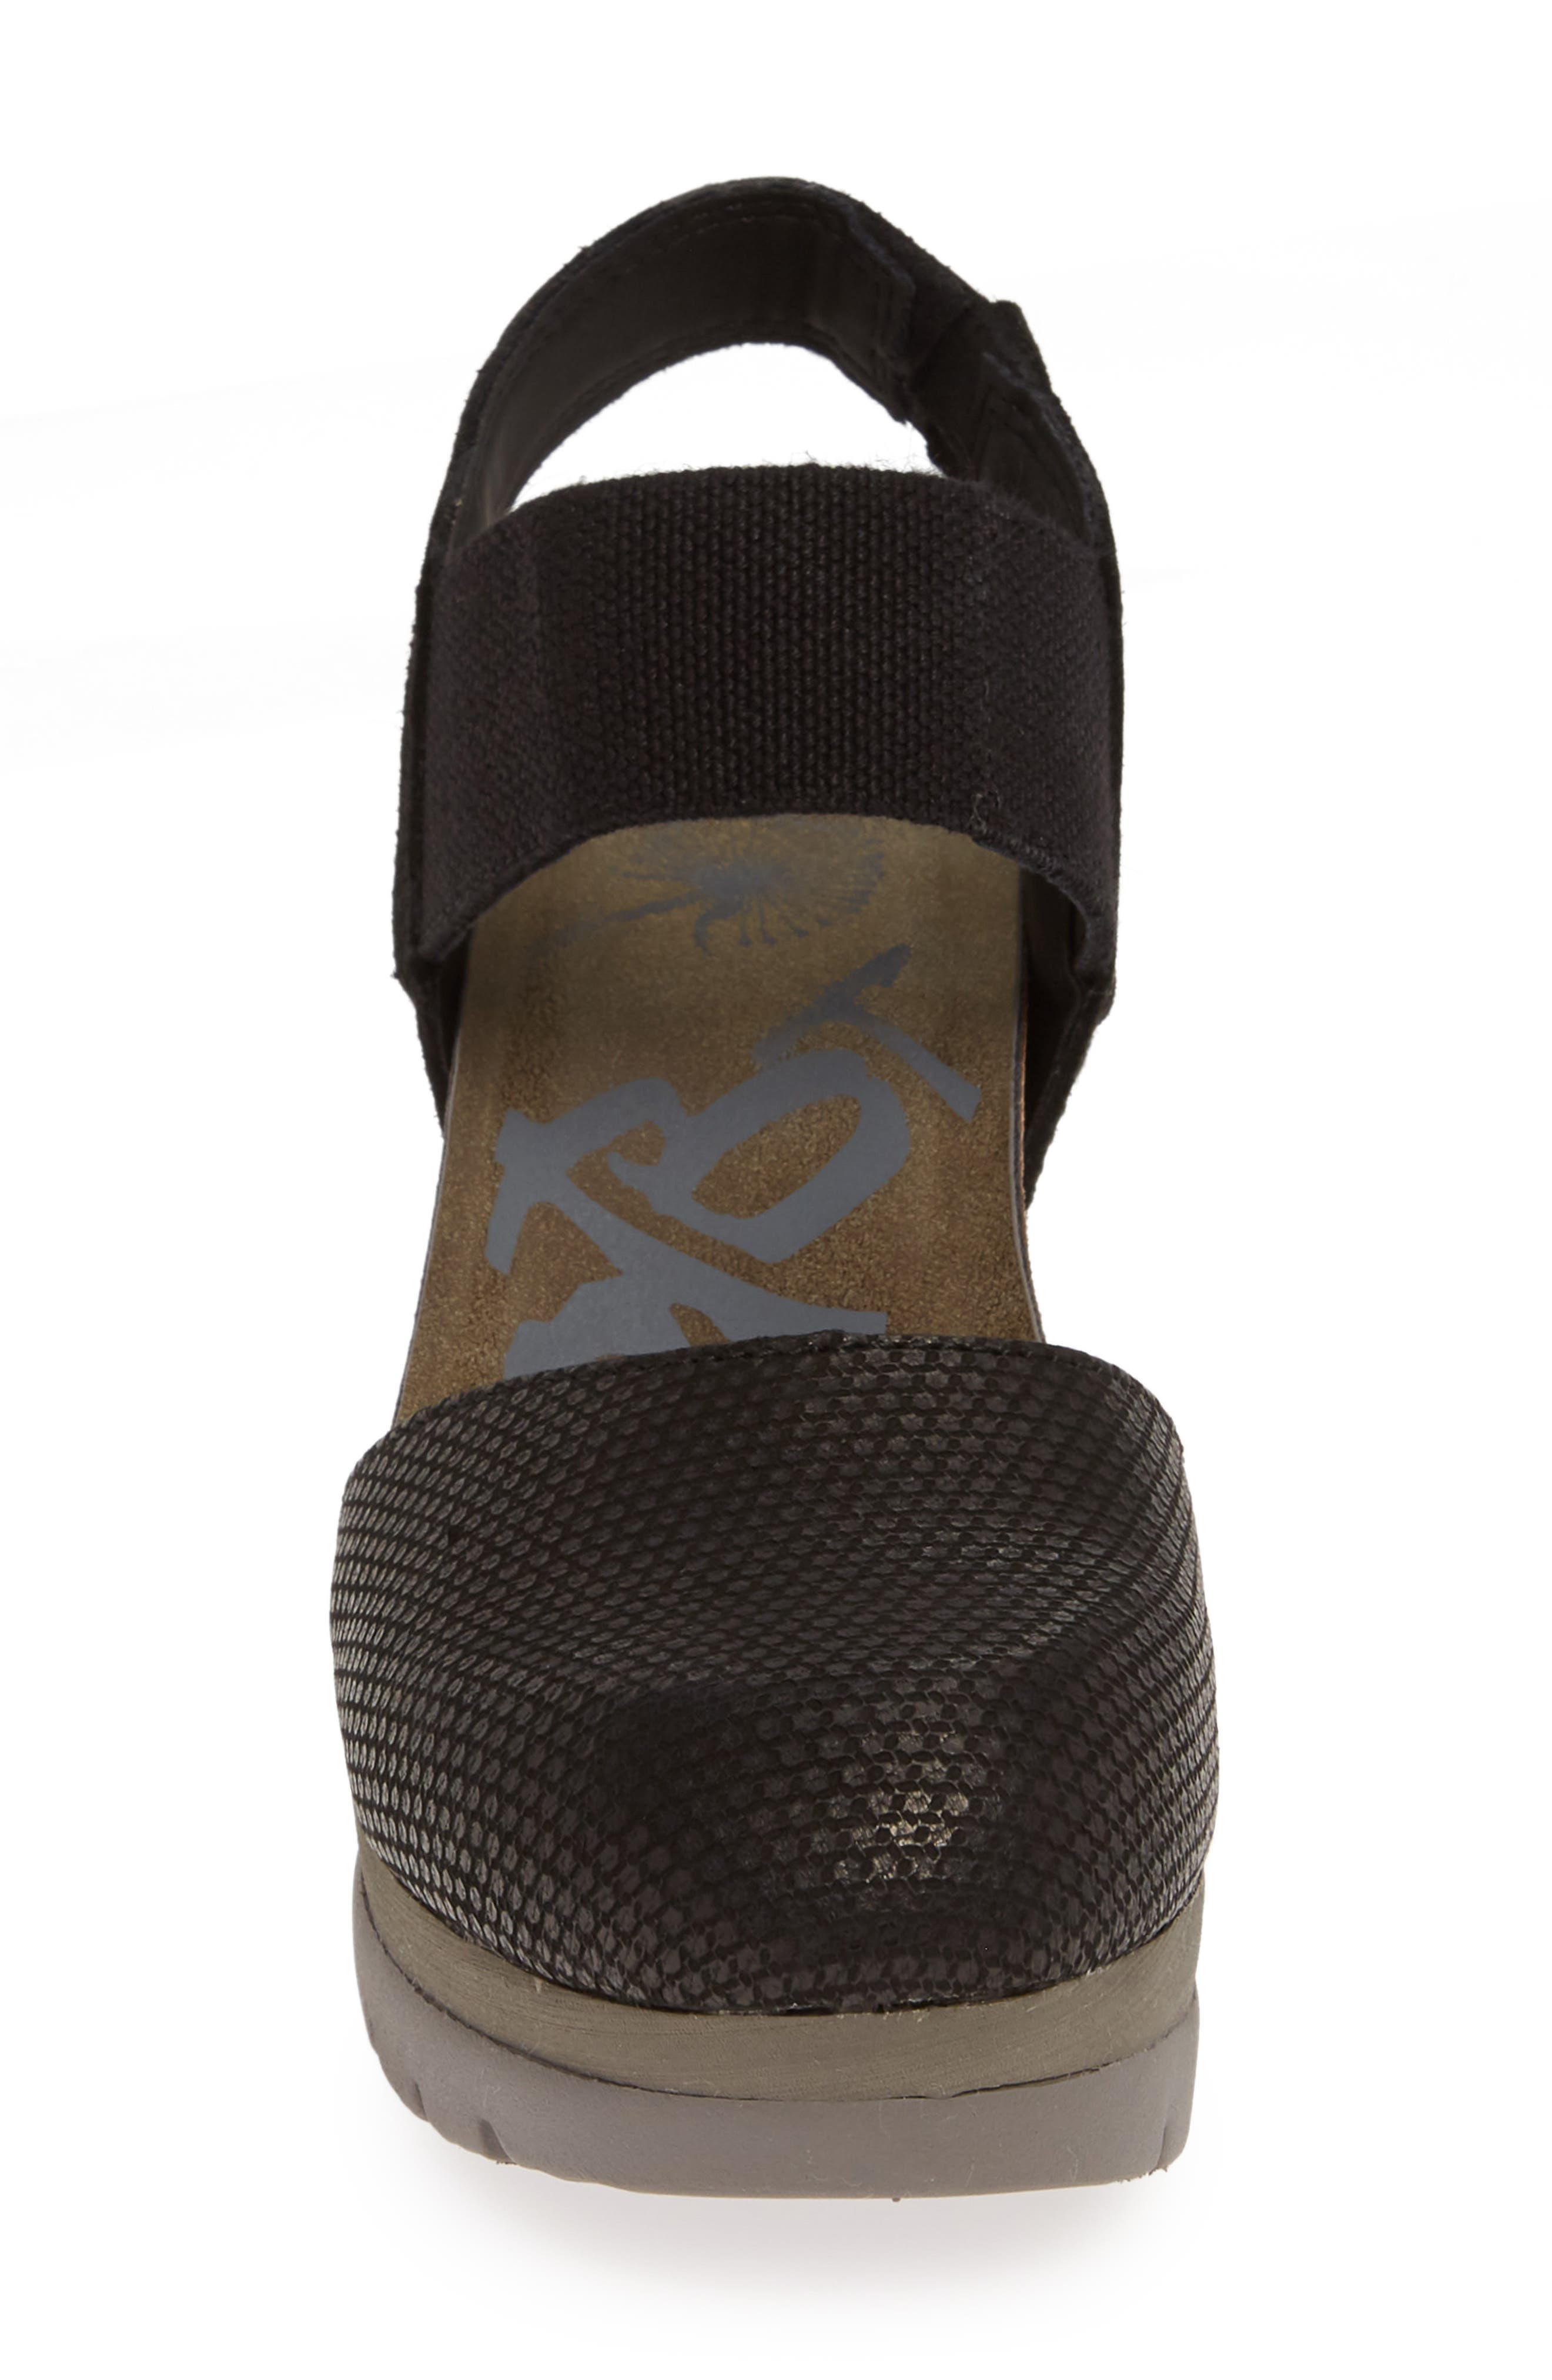 Carry On Wedge Sandal,                             Alternate thumbnail 4, color,                             BLACK LEATHER